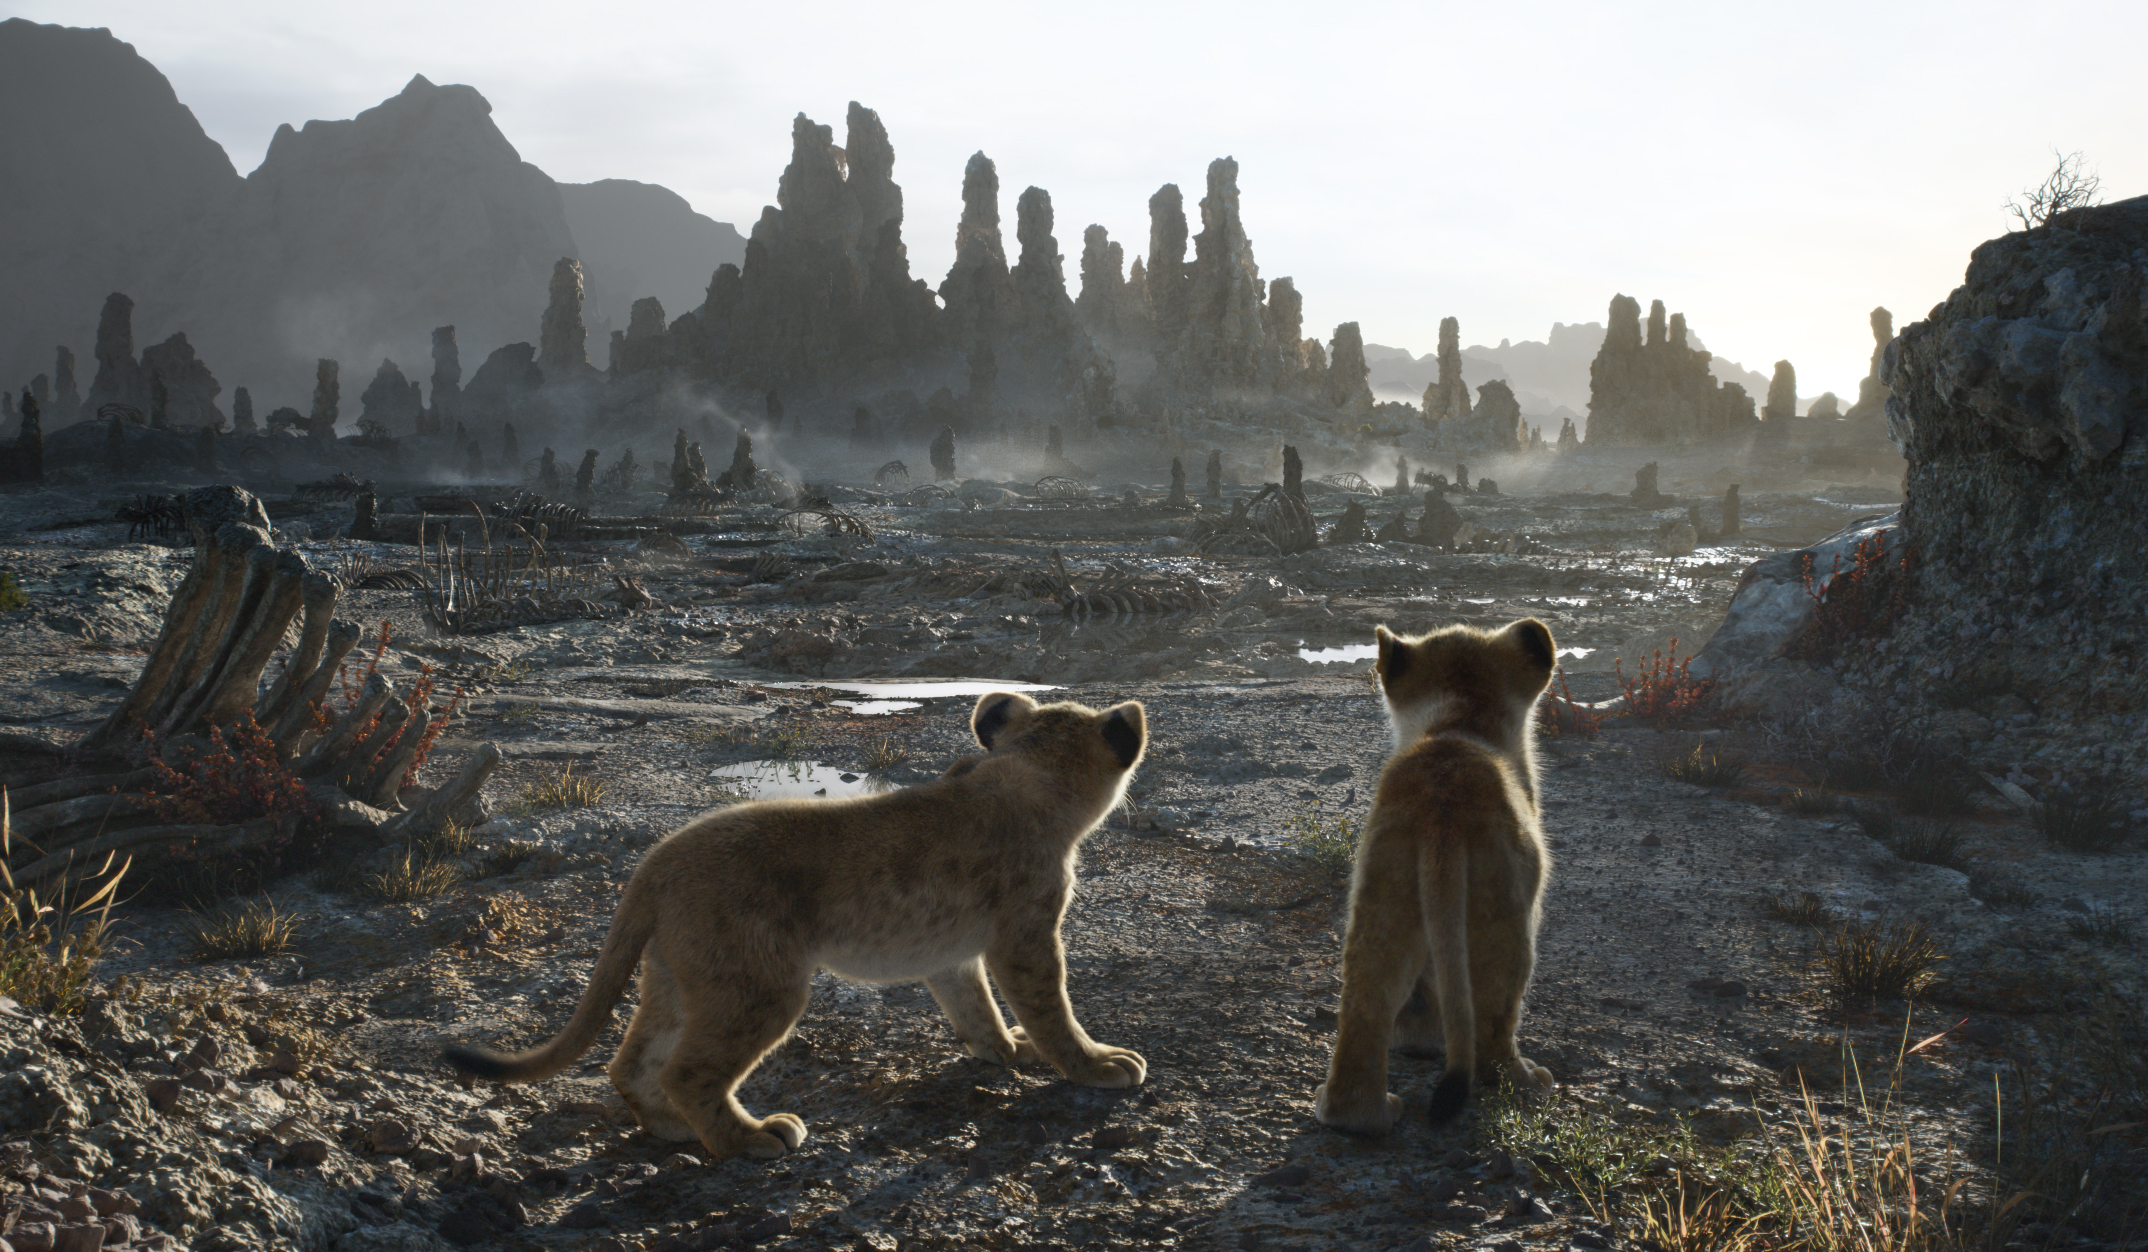 """THE LION KING - Featuring the voices of JD McCrary as Young Simba and Shahadi Wright Joseph as Young Nala, Disney's """"The Lion King"""" is directed by Jon Favreau. In theaters July 19, 2019. © 2019 Disney Enterprises, Inc. All Rights Reserved."""